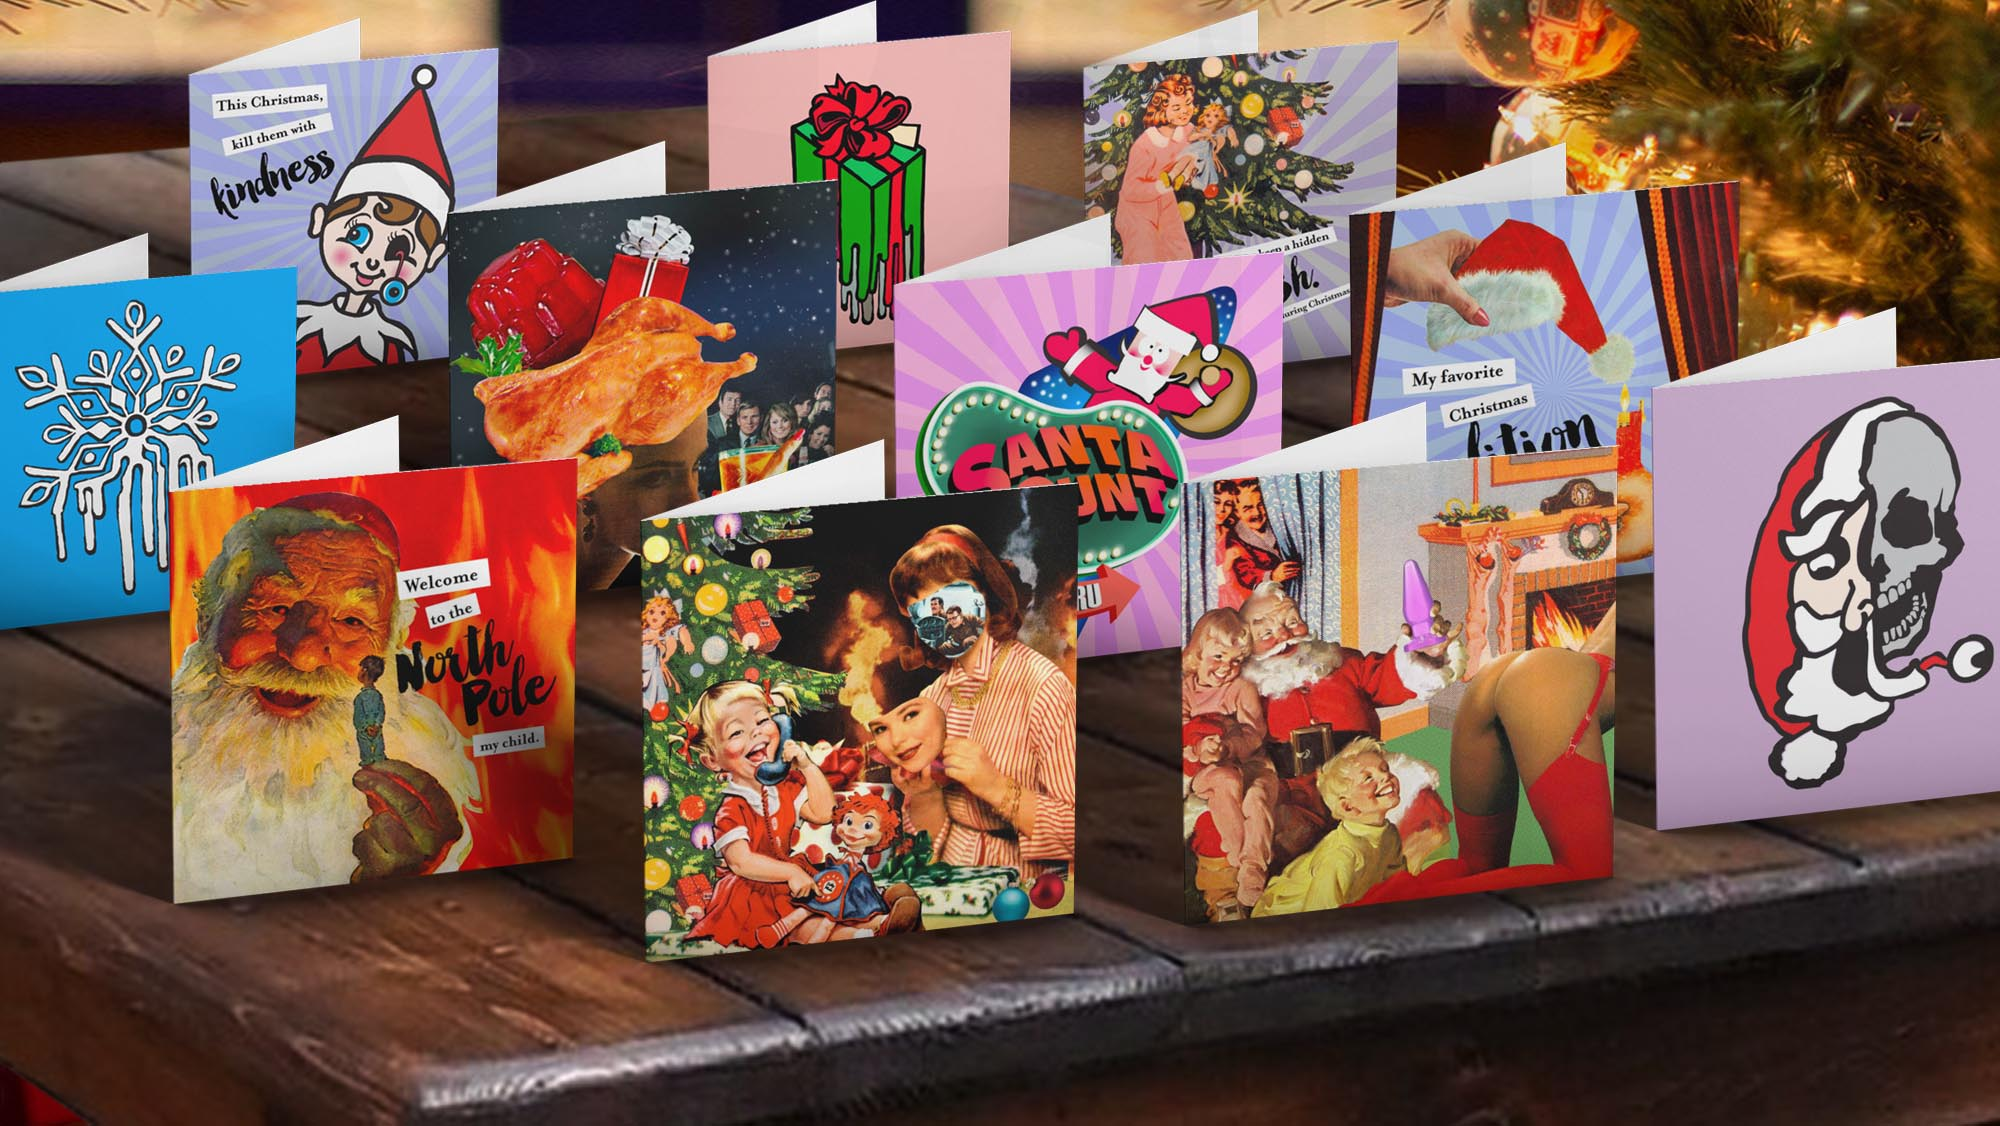 Provocative Christmas greeting cards by Joan Seed